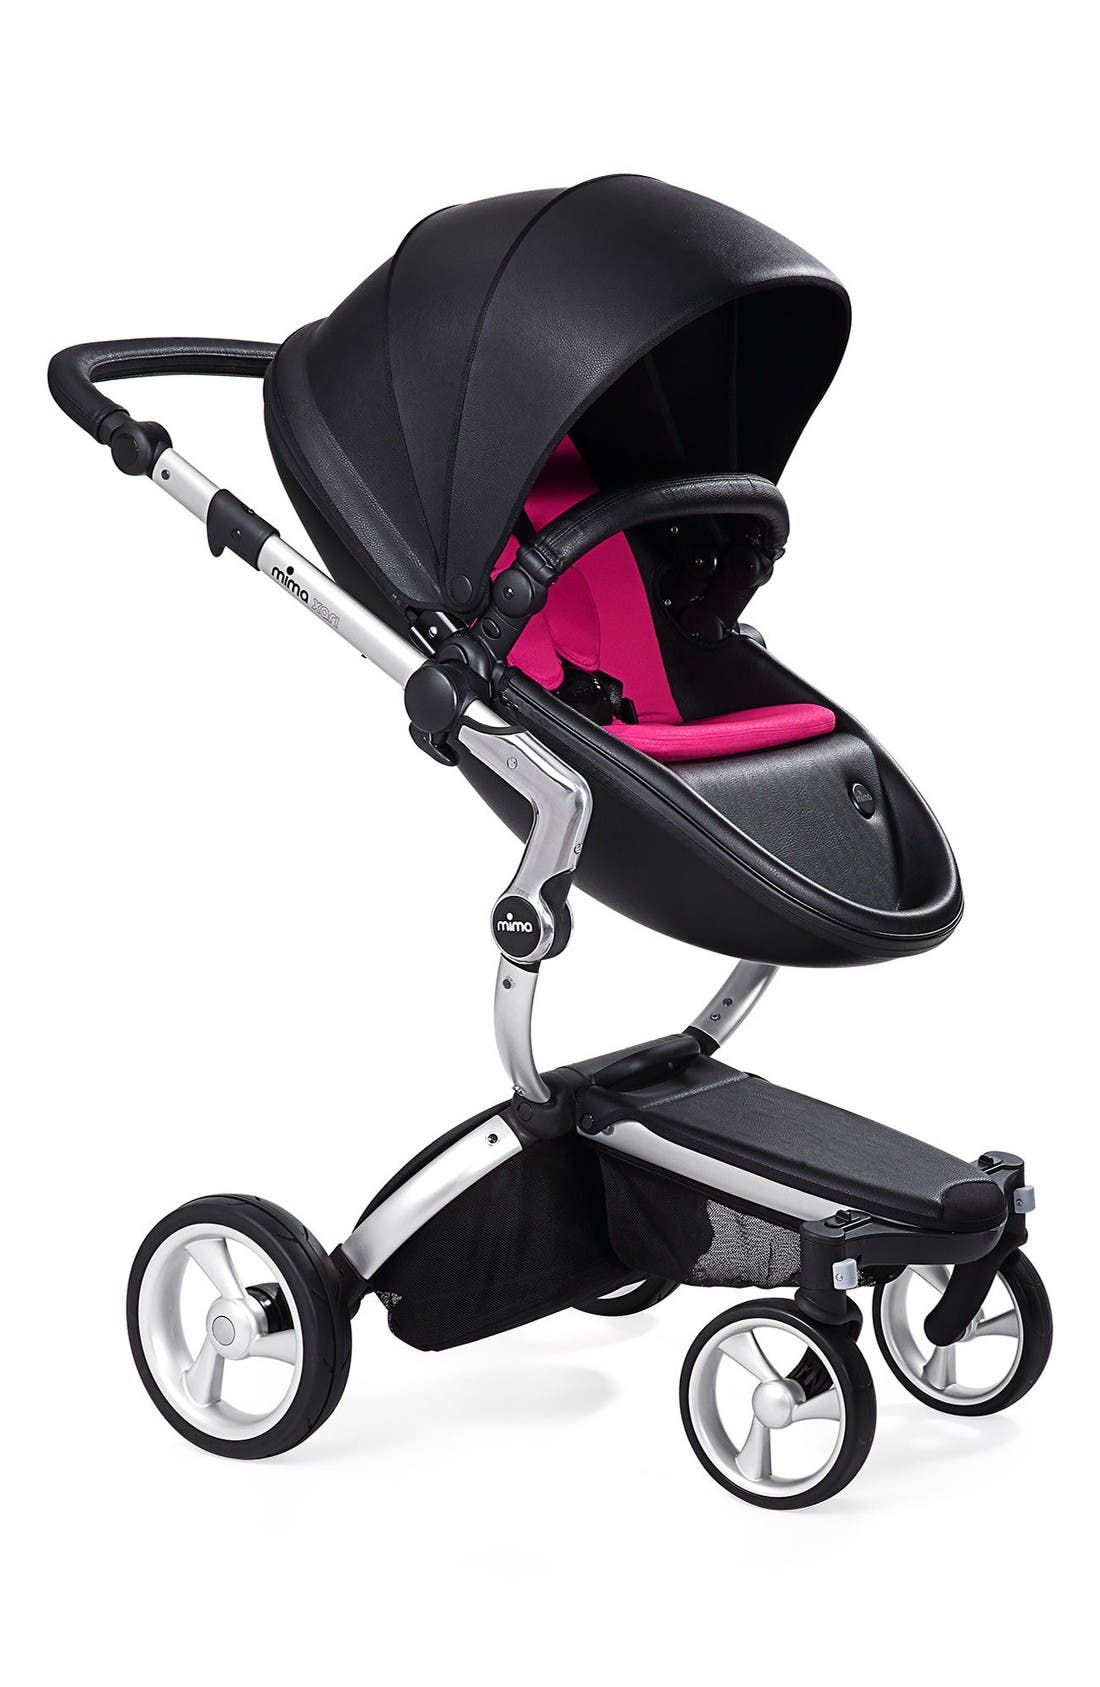 Main Image - Mima Xari Aluminum Chassis Stroller with Reversible Reclining Seat & Carrycot